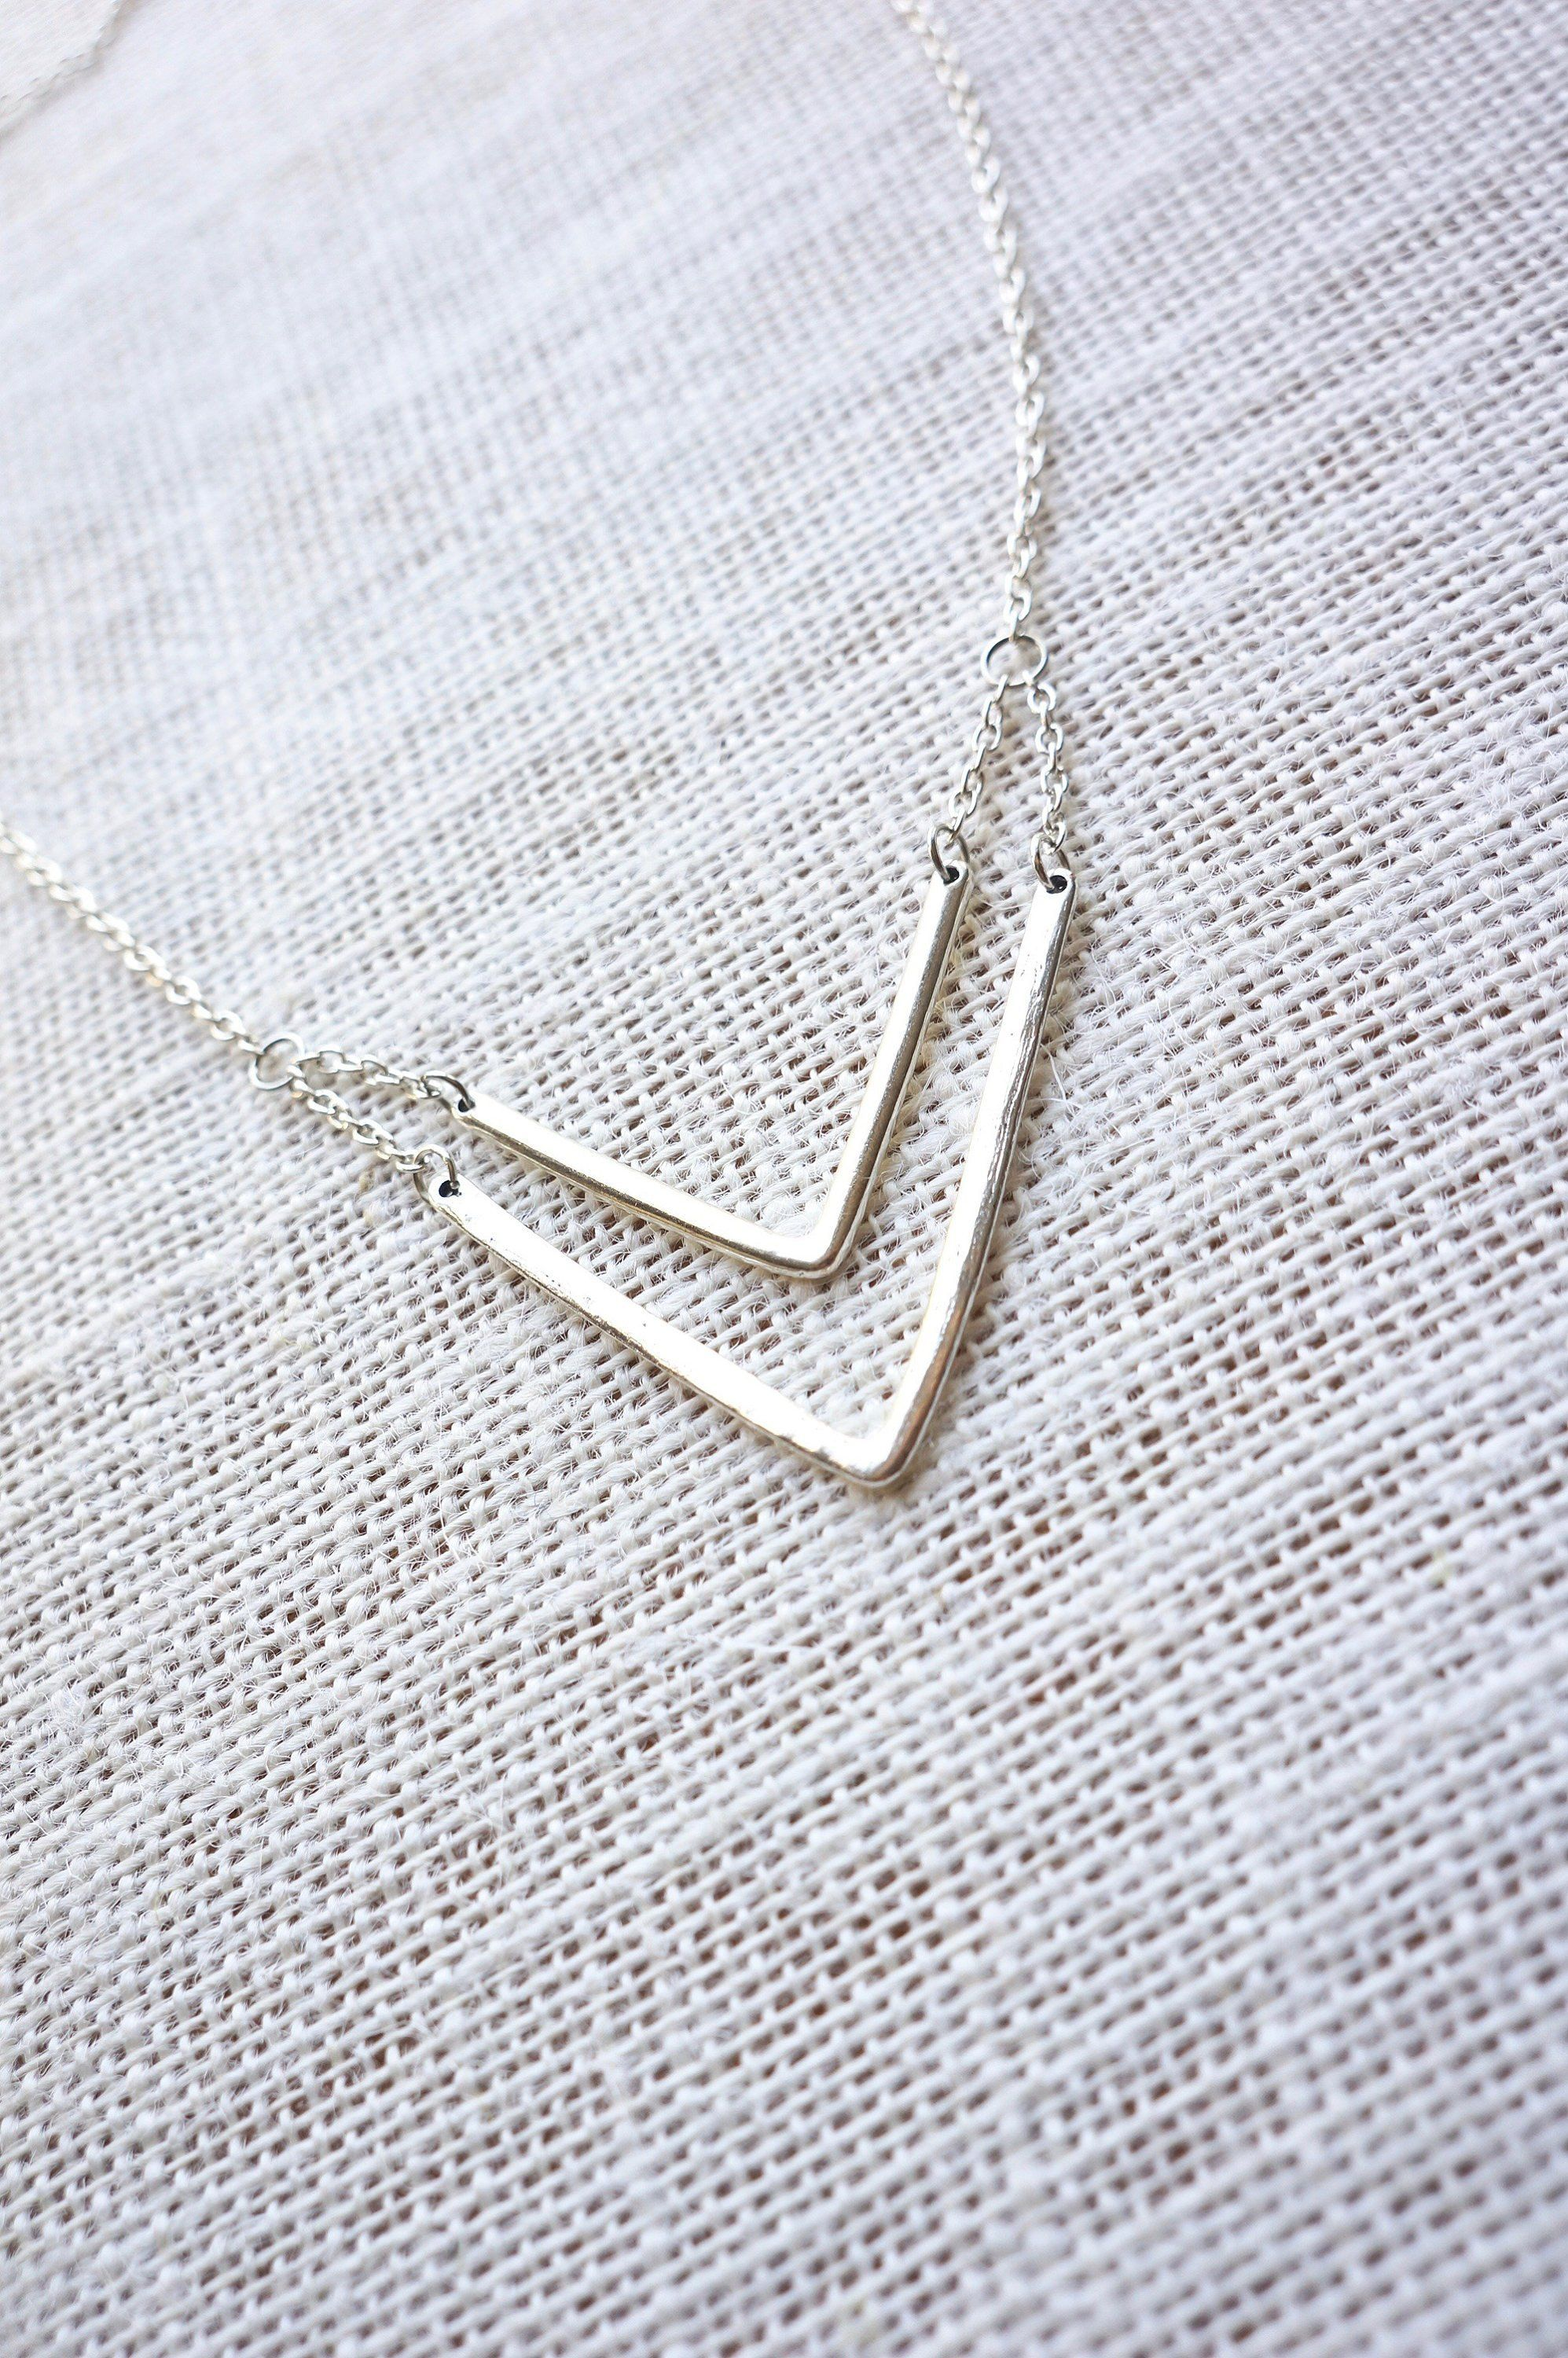 DOUBLE CHEVRON Necklace Silver, Teen Girl Gifts, V Necklace Silver, Boho Chic Jewelry, Simple Necklaces For Women, Layered Necklace Silver is part of Layered necklaces silver, Silver necklaces, Silver jewelry necklace, Silver necklace simple, Chevron necklace, Simple necklace - LilyDailyBoutiq OUR JEWELRY IS  Exclusively designed in Toronto  Artisan crafted and hand finished 💖Satisfaction Guaranteed💖 Lily Daily Boutique Timeless Pieces Effortless Beauty